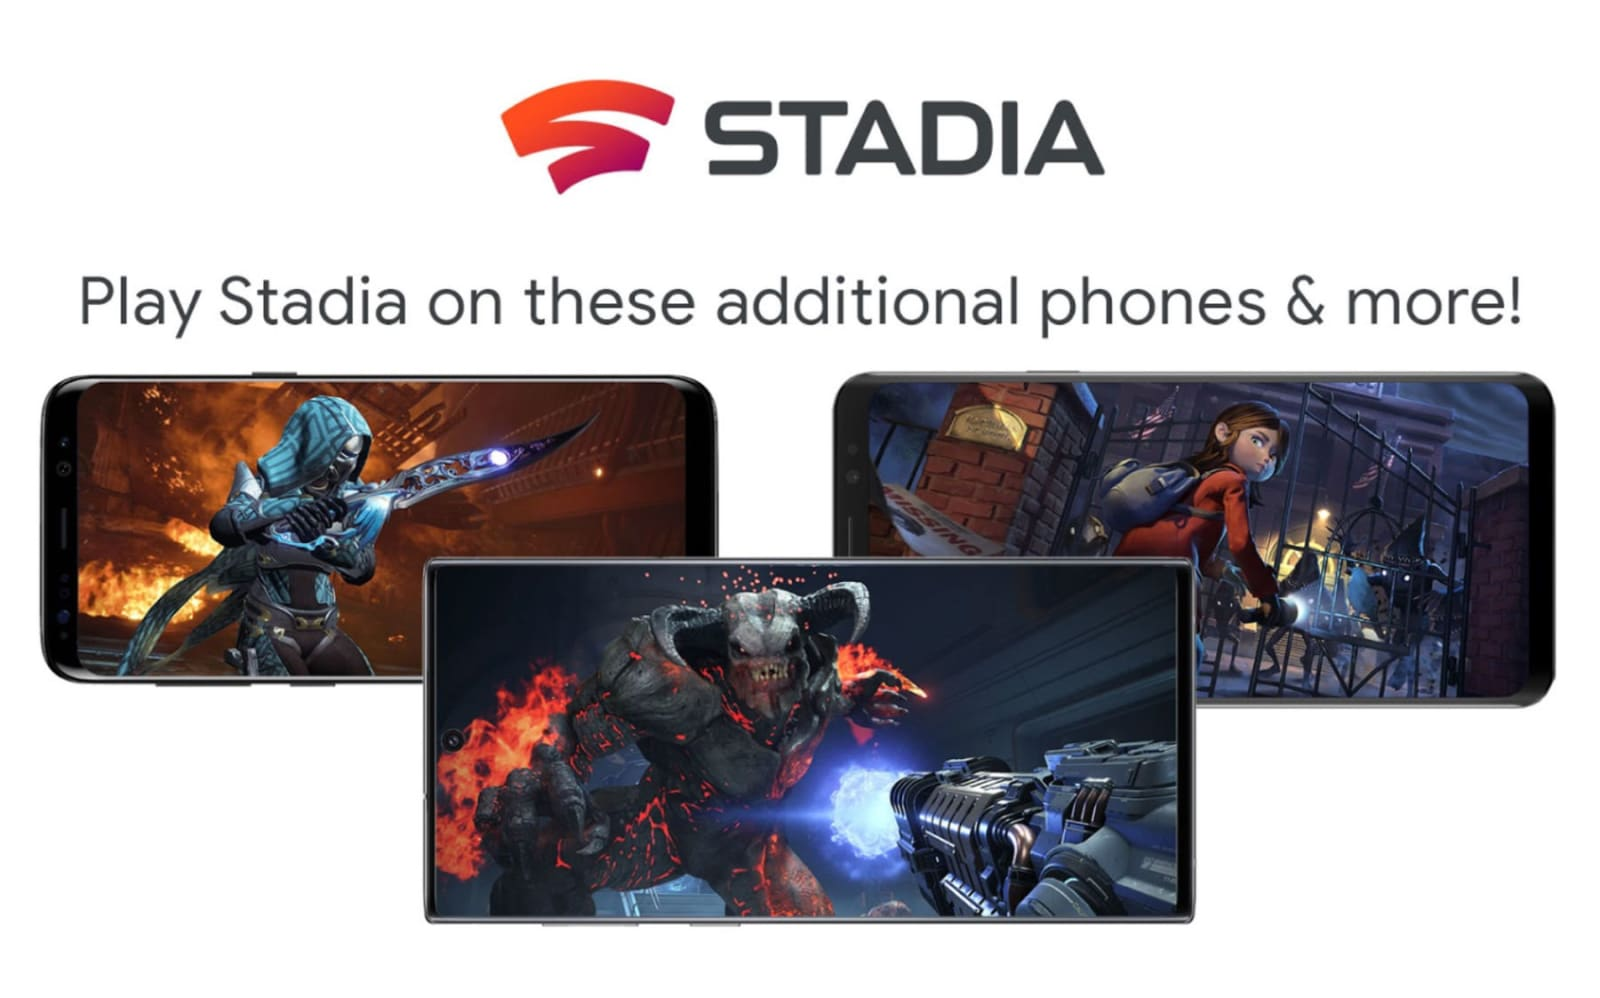 Google is bringing Stadia to 18 new phones, including the Galaxy S20